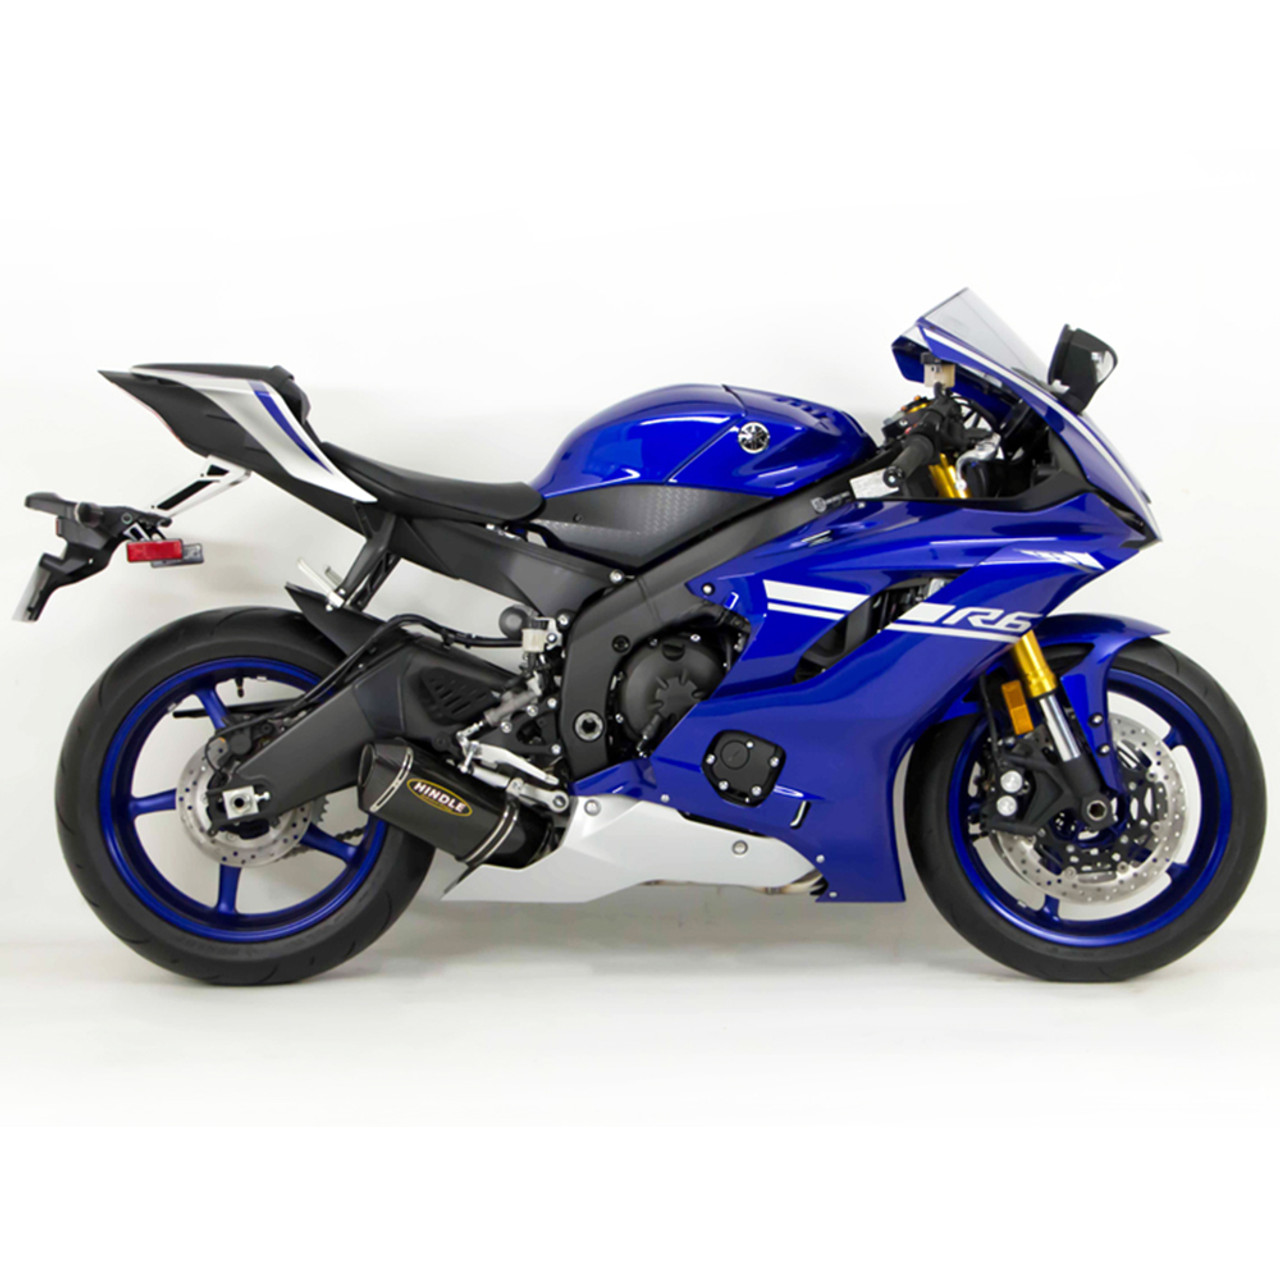 R6r Wiring Diagram Explained Diagrams R6s 2006 Yamaha Yzf R6 Track Bike 2000